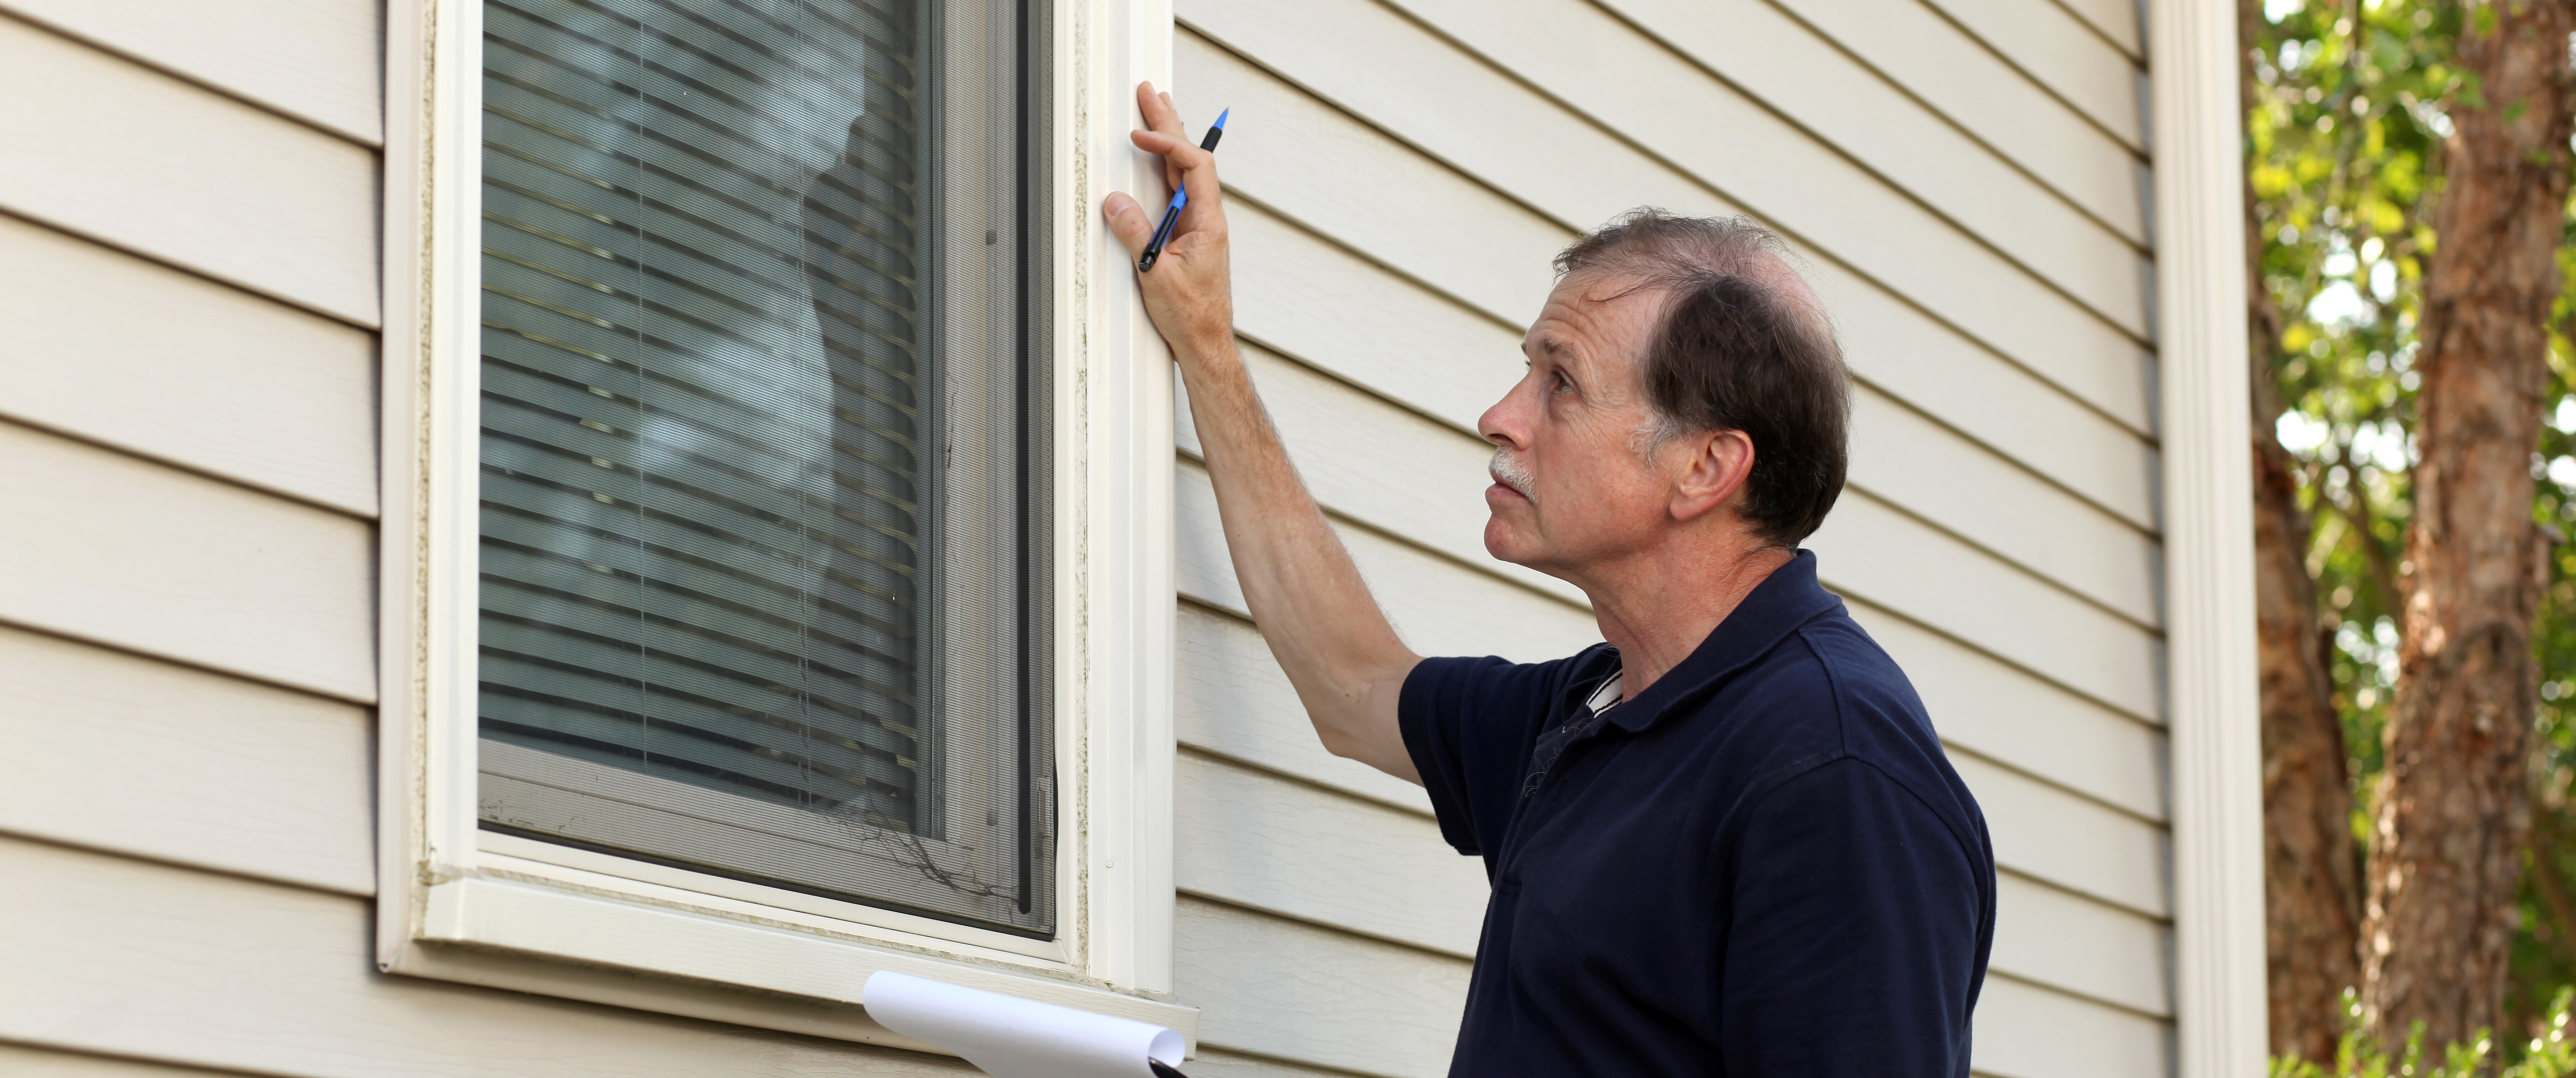 Landlord Liability For Mold